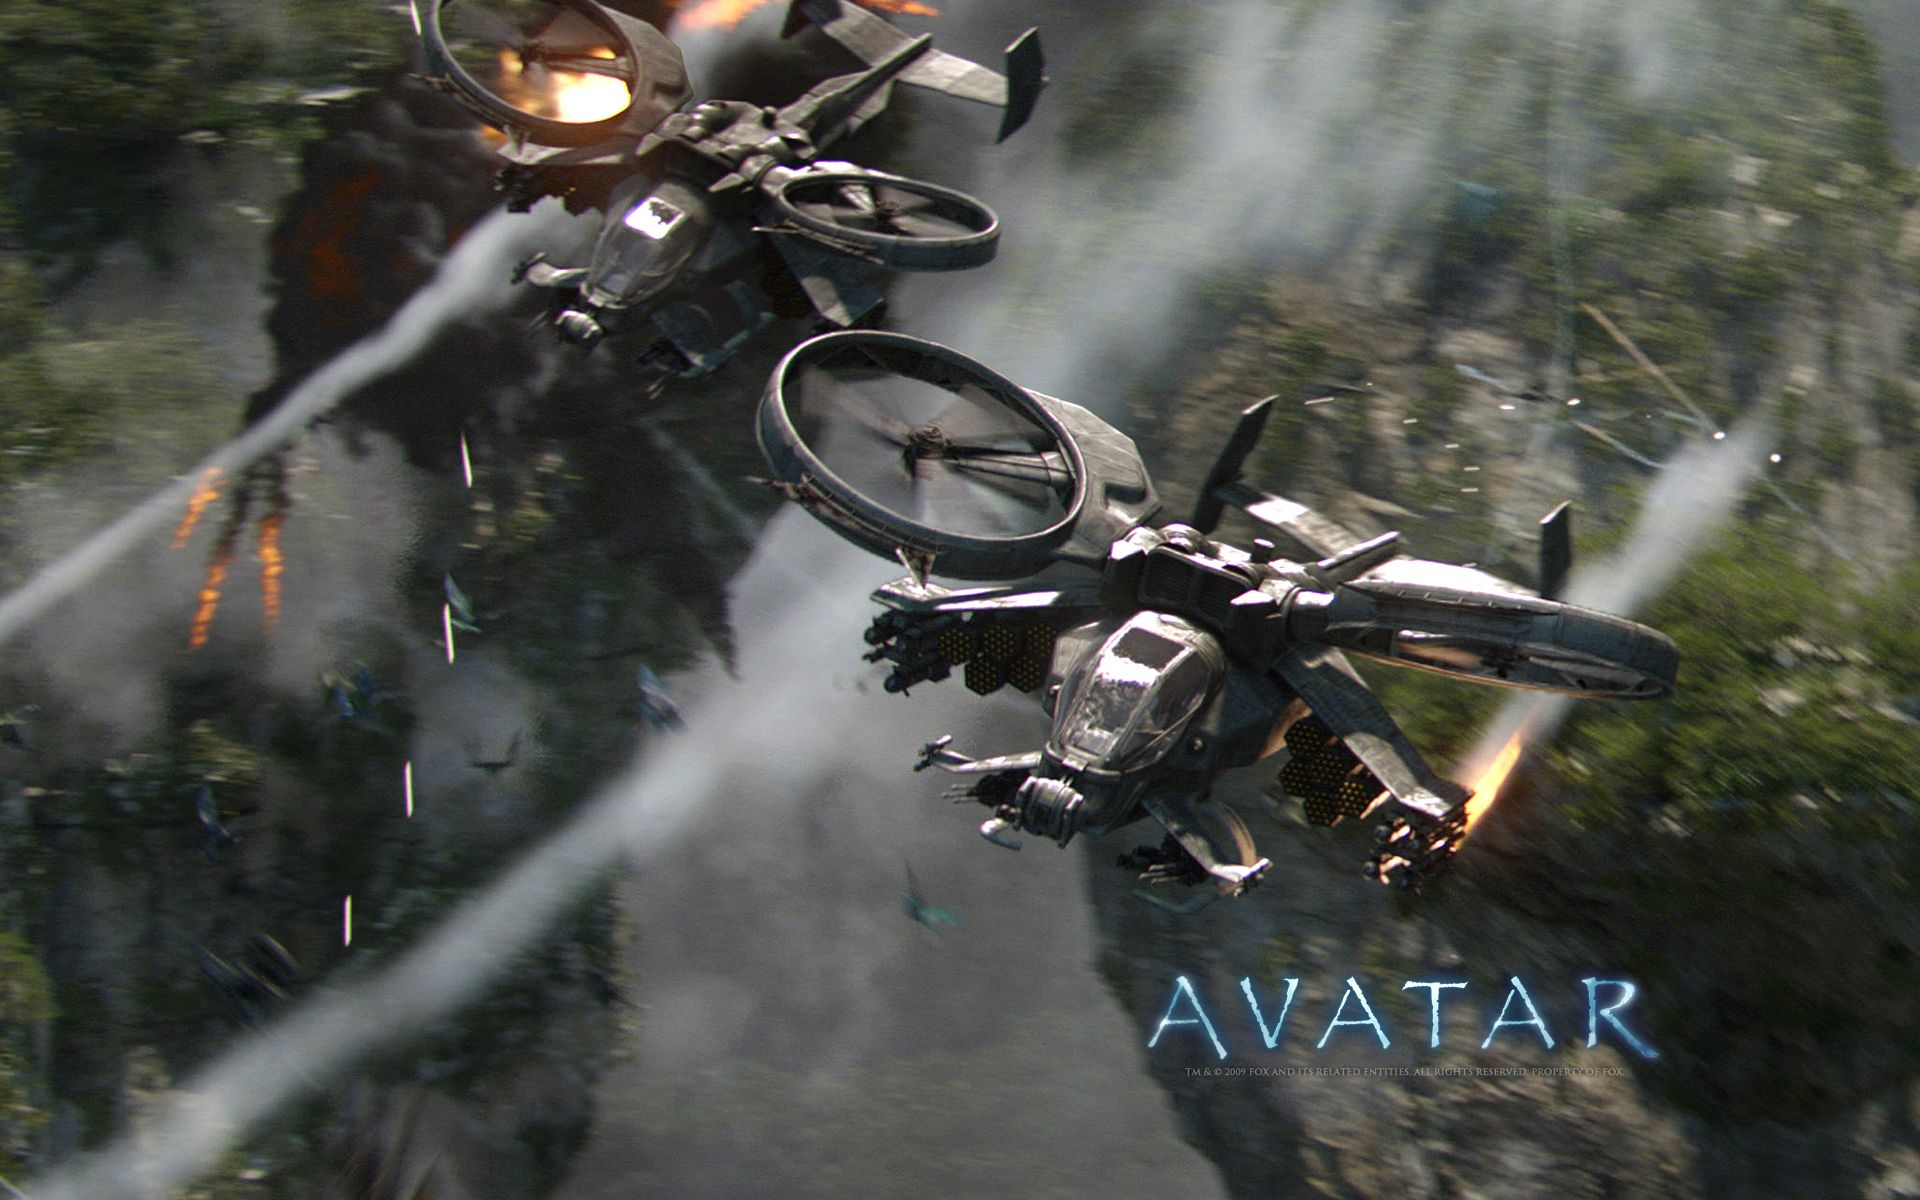 avatar movie war movies movies war and avatar movie war